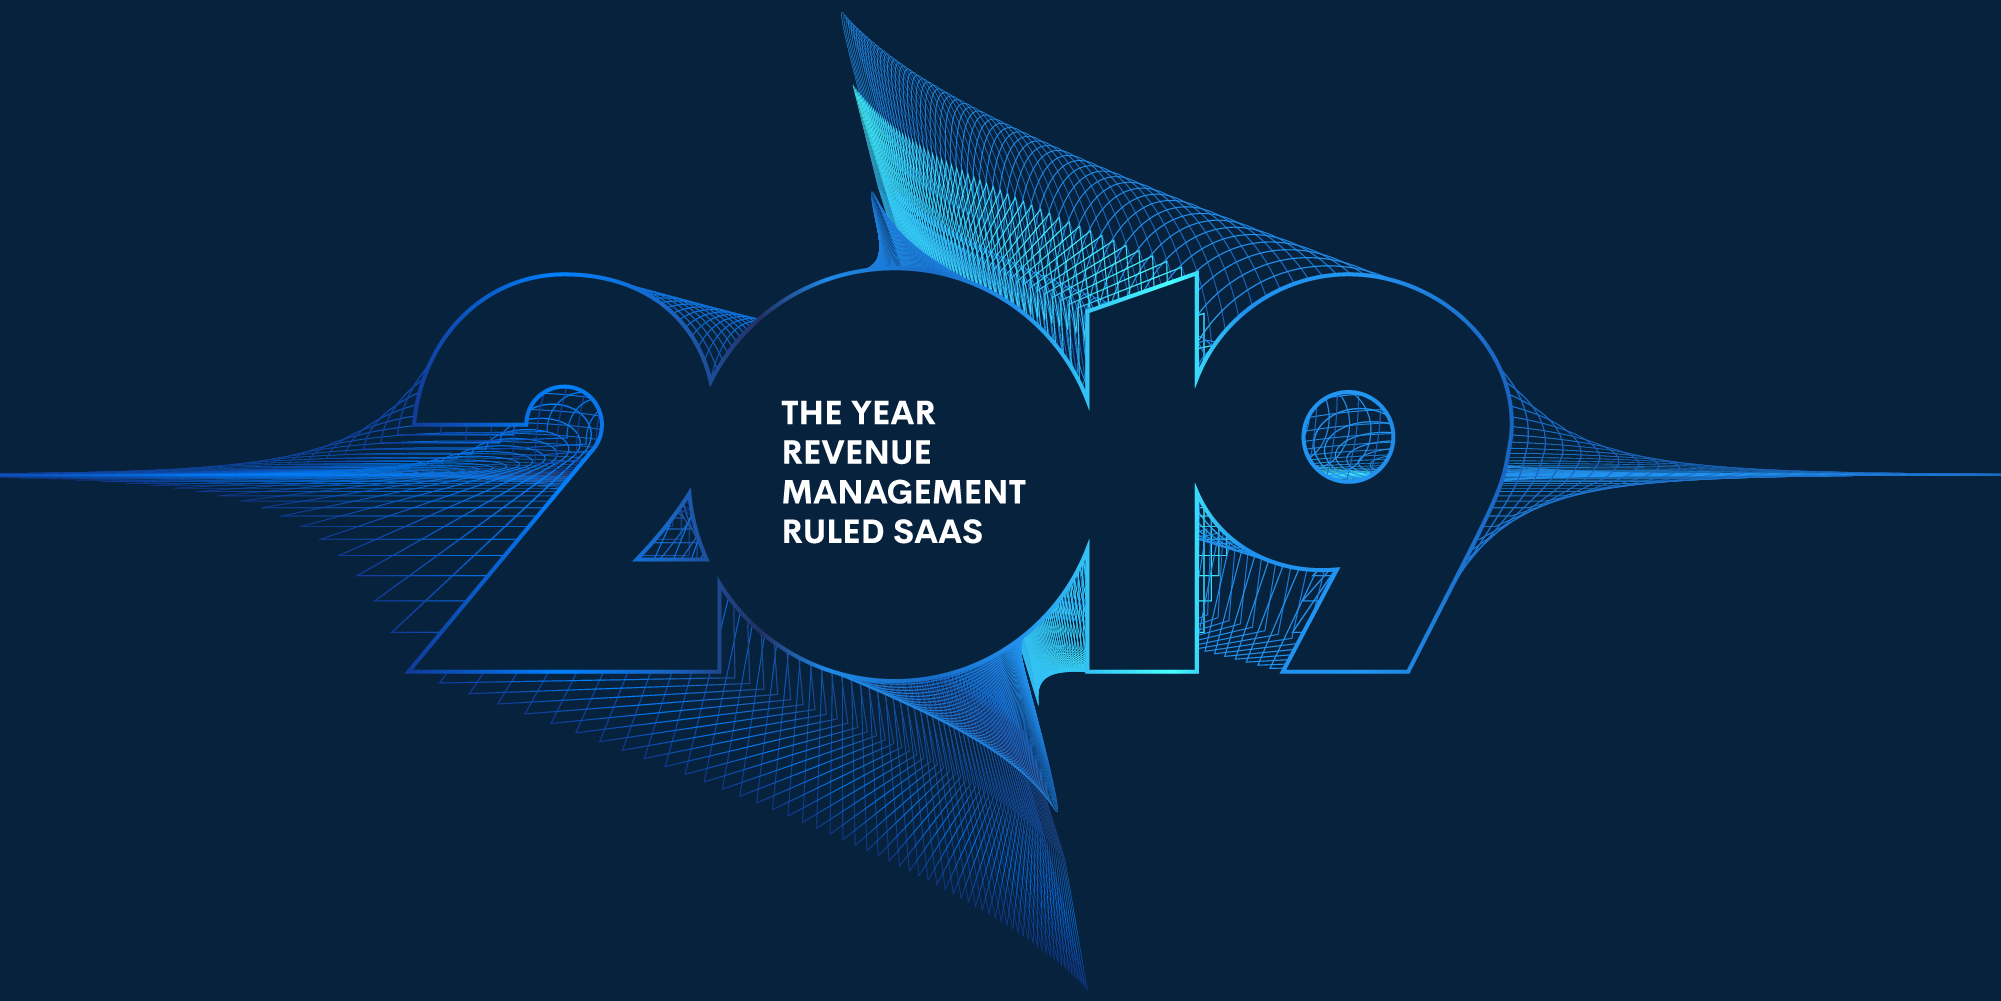 A look-back on billing & revenue management in 2019